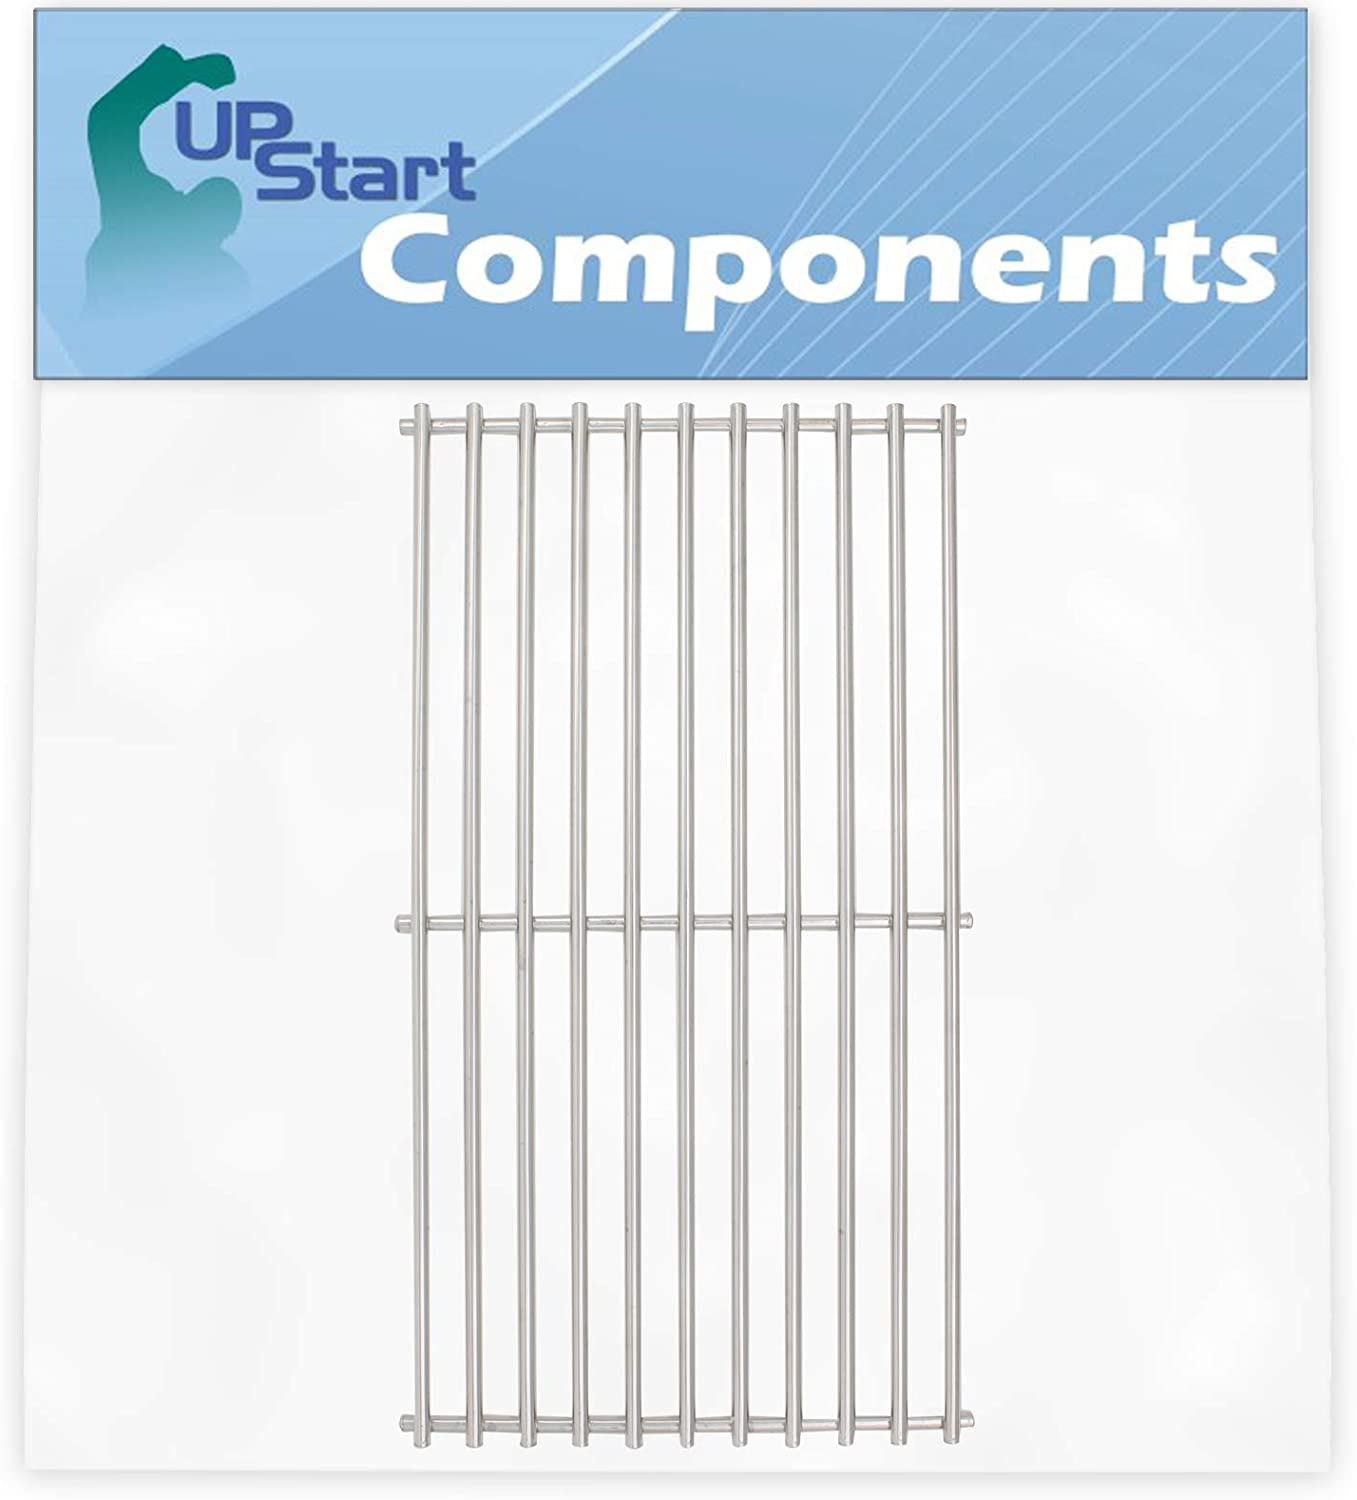 UpStart Components BBQ Popular overseas Grill Cooking Parts Replacement Grates Long-awaited fo